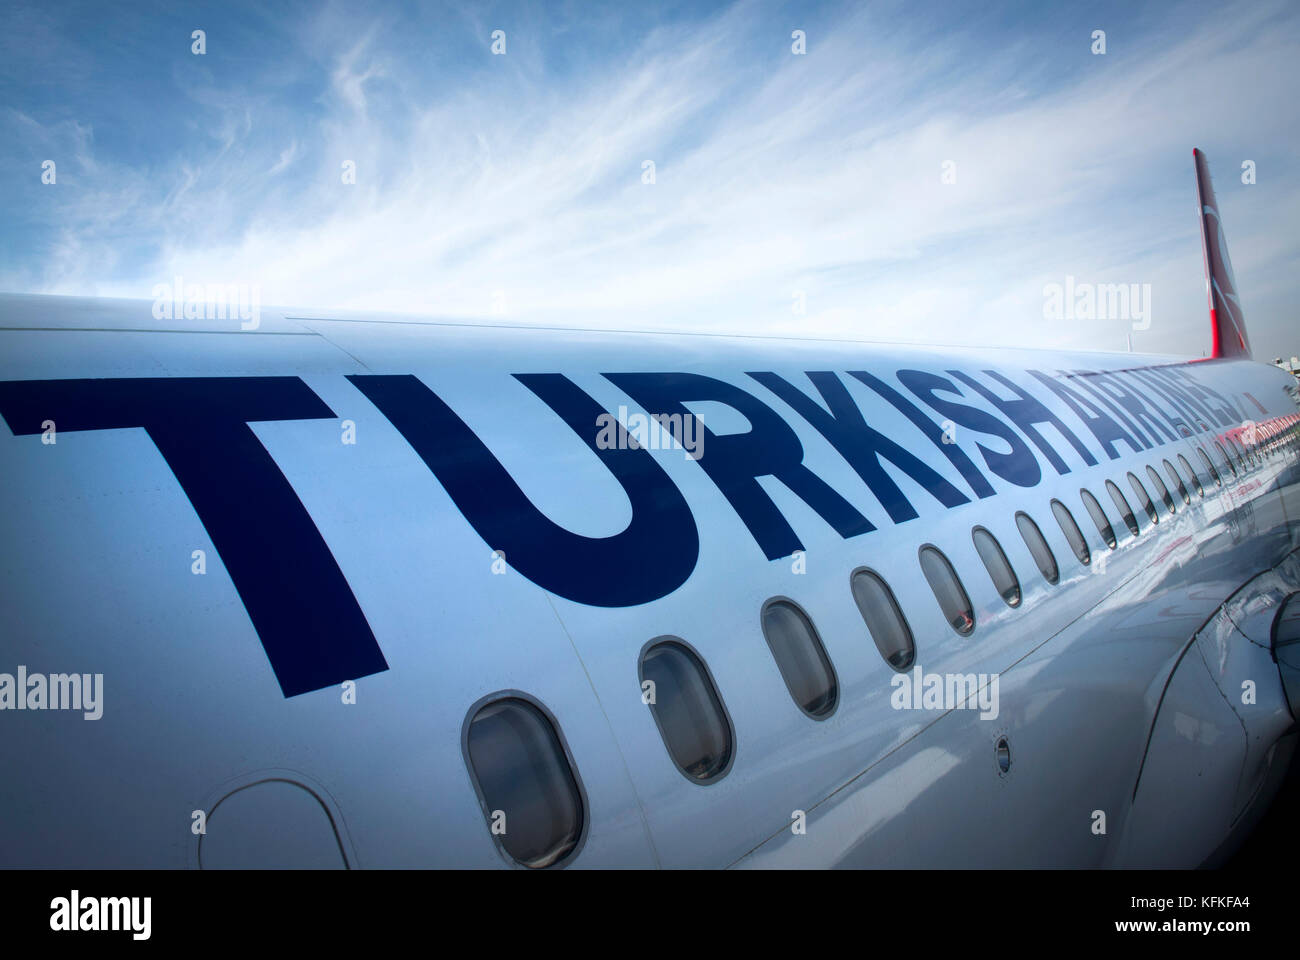 Turkish Airlines plane at Istanbul airport. - Stock Image